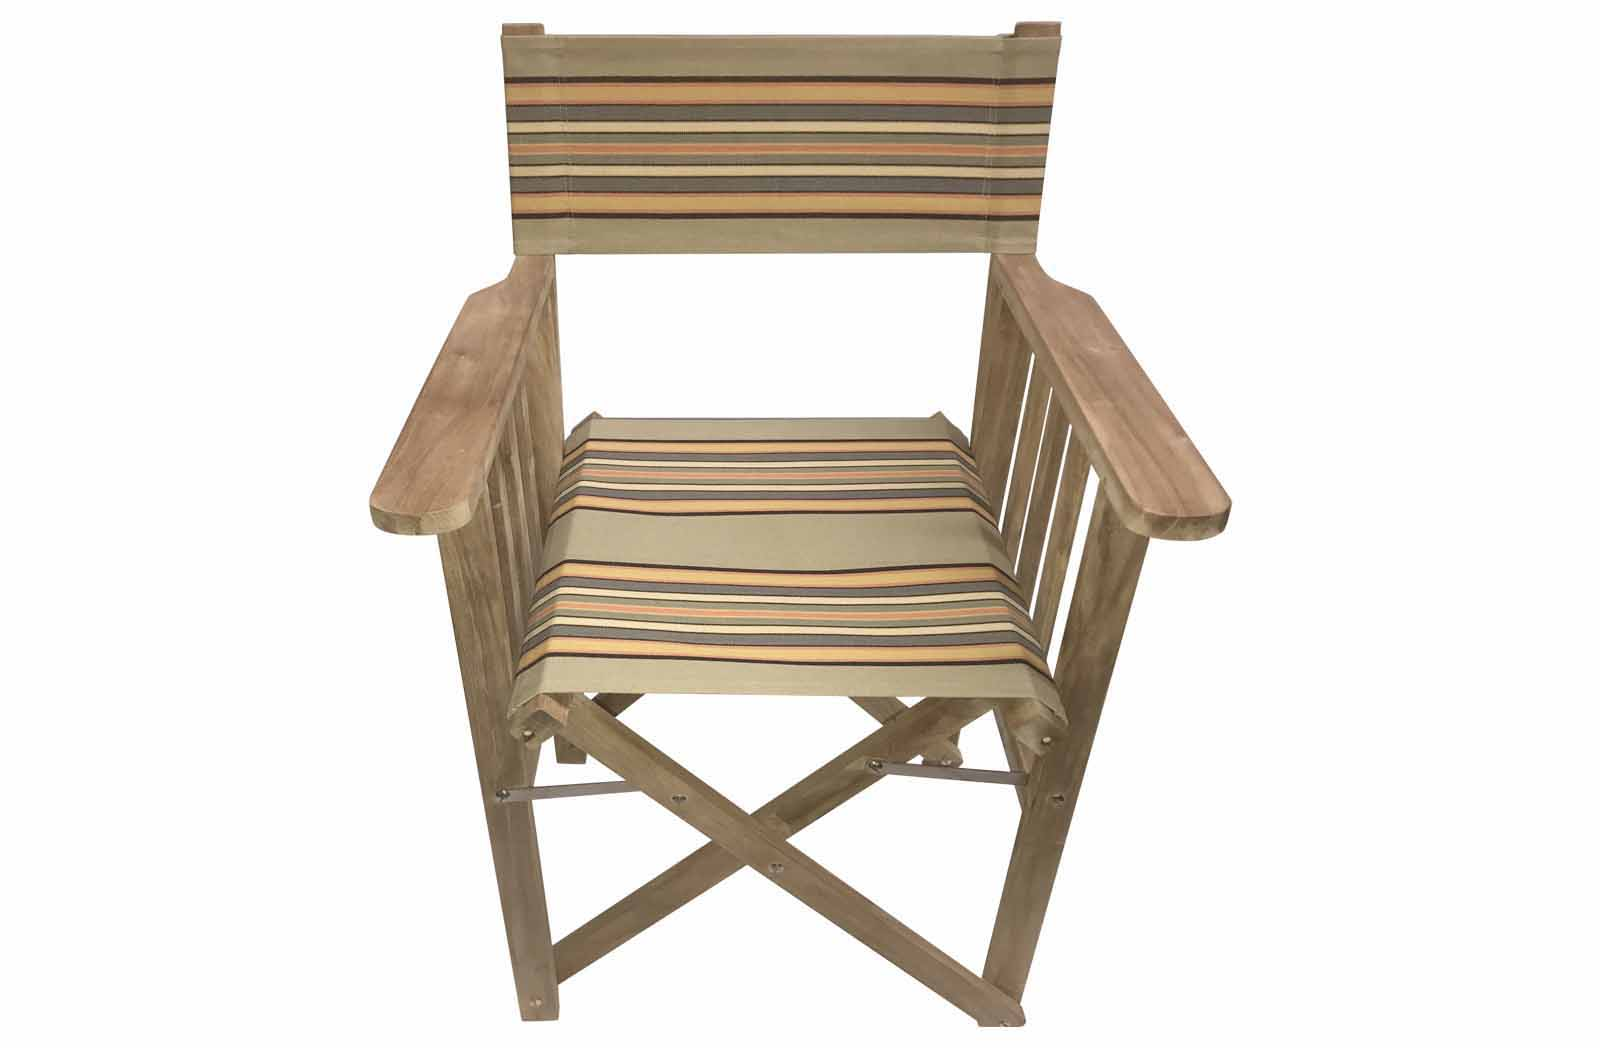 khaki, sand, light blue - Directors Chairs